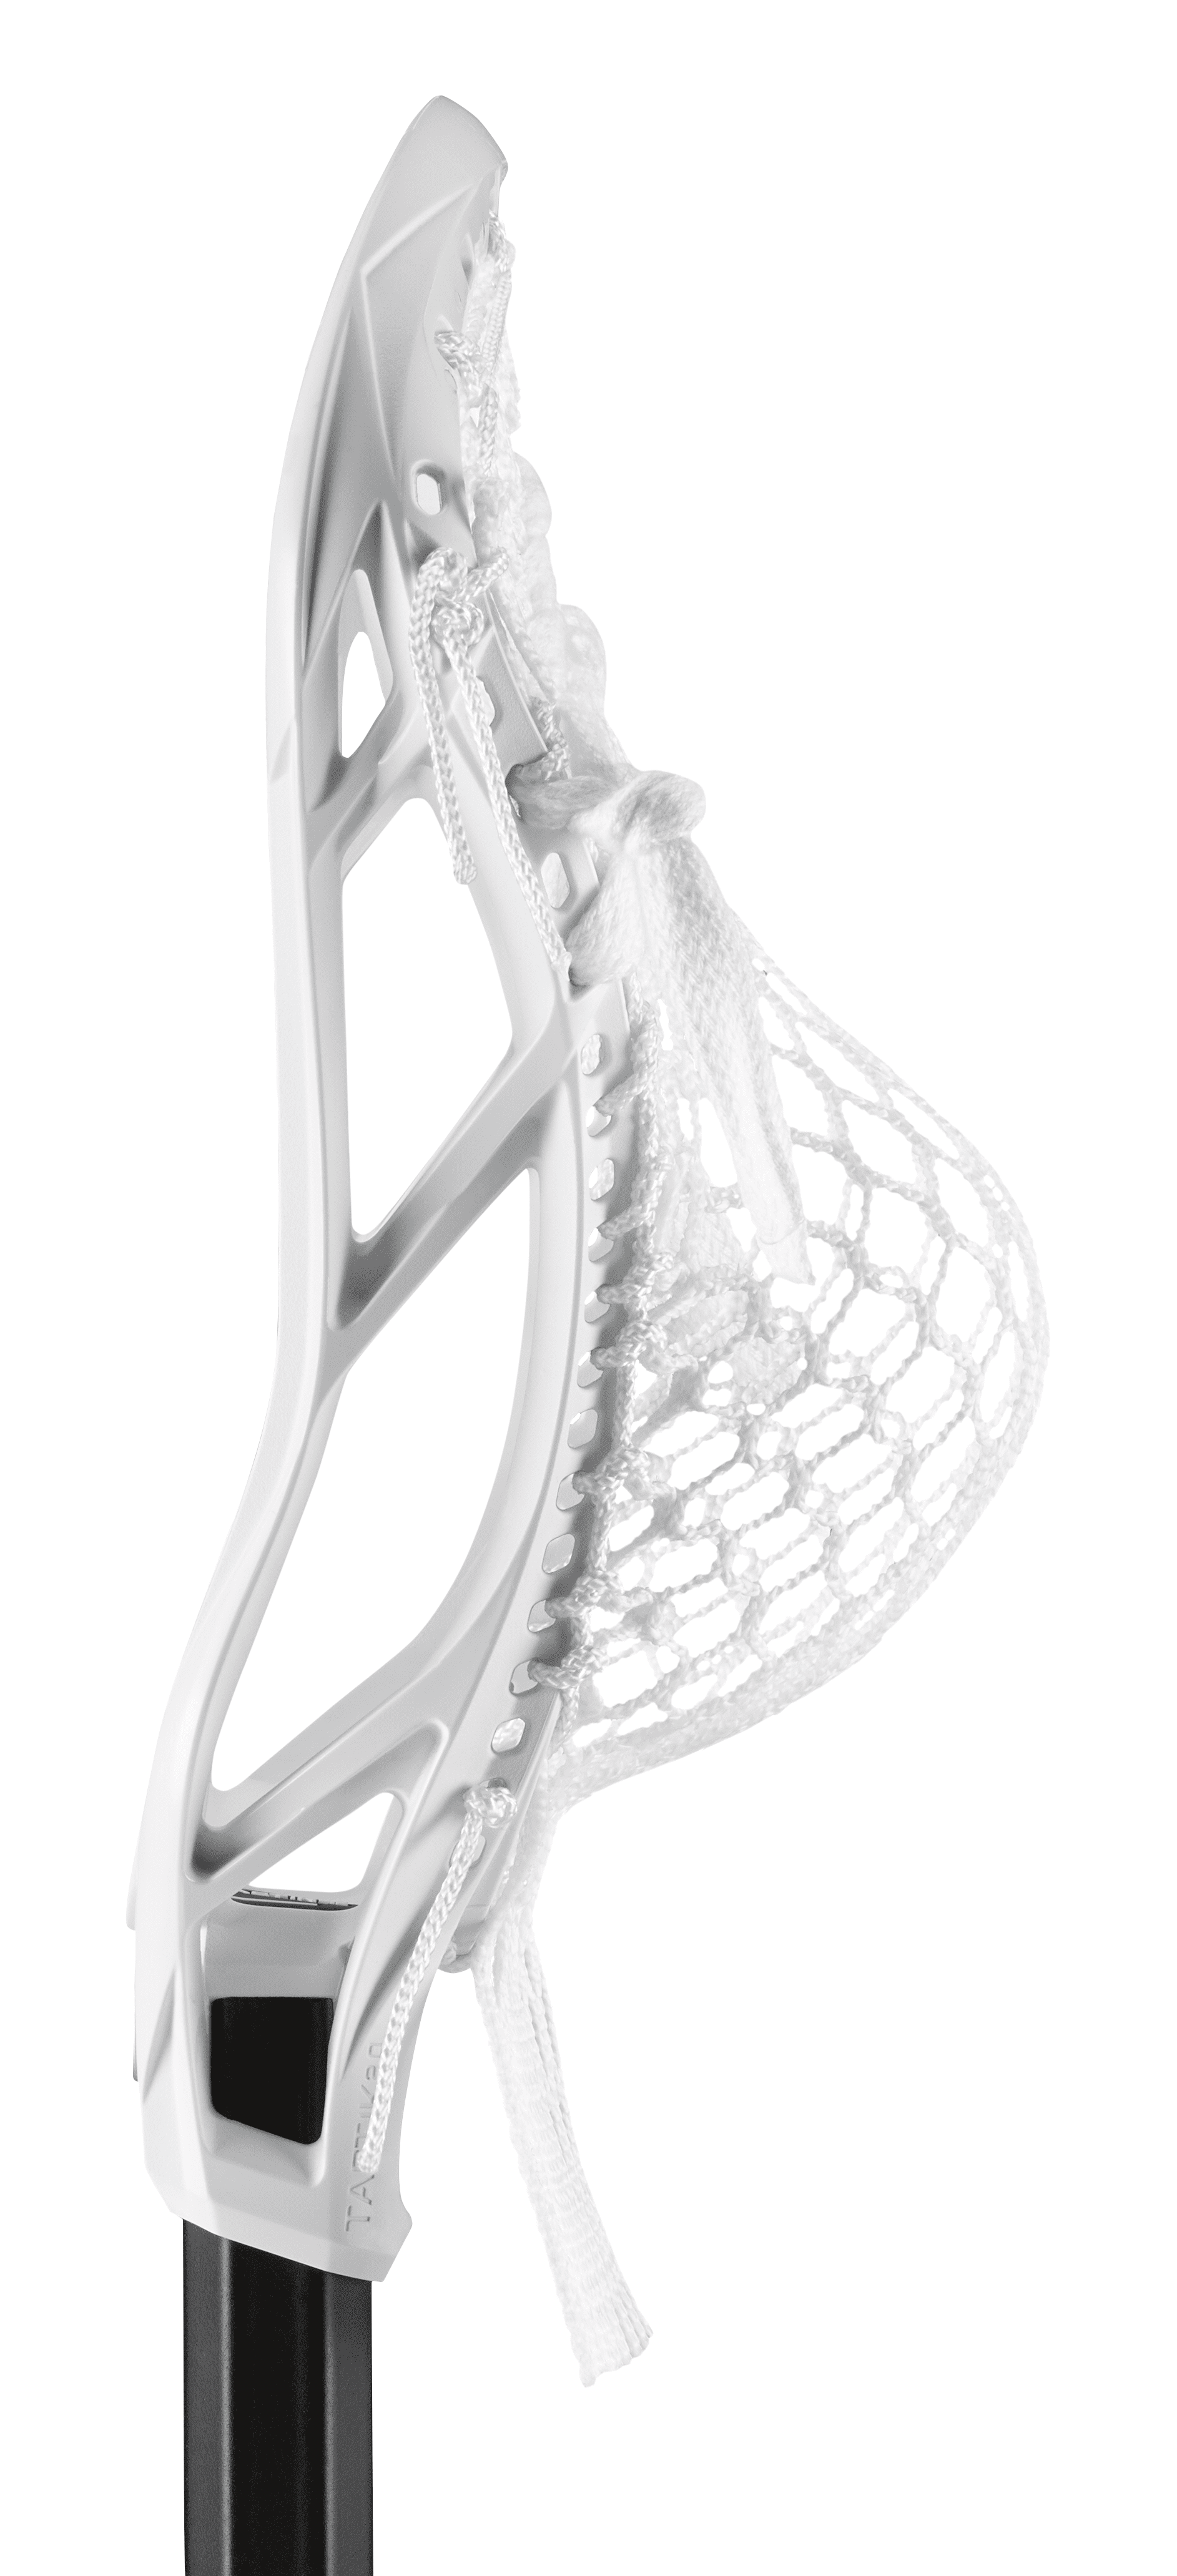 TACTIK_2.0_HEAD_ATTACK_WHITE_STRUNG_SIDE-1.png